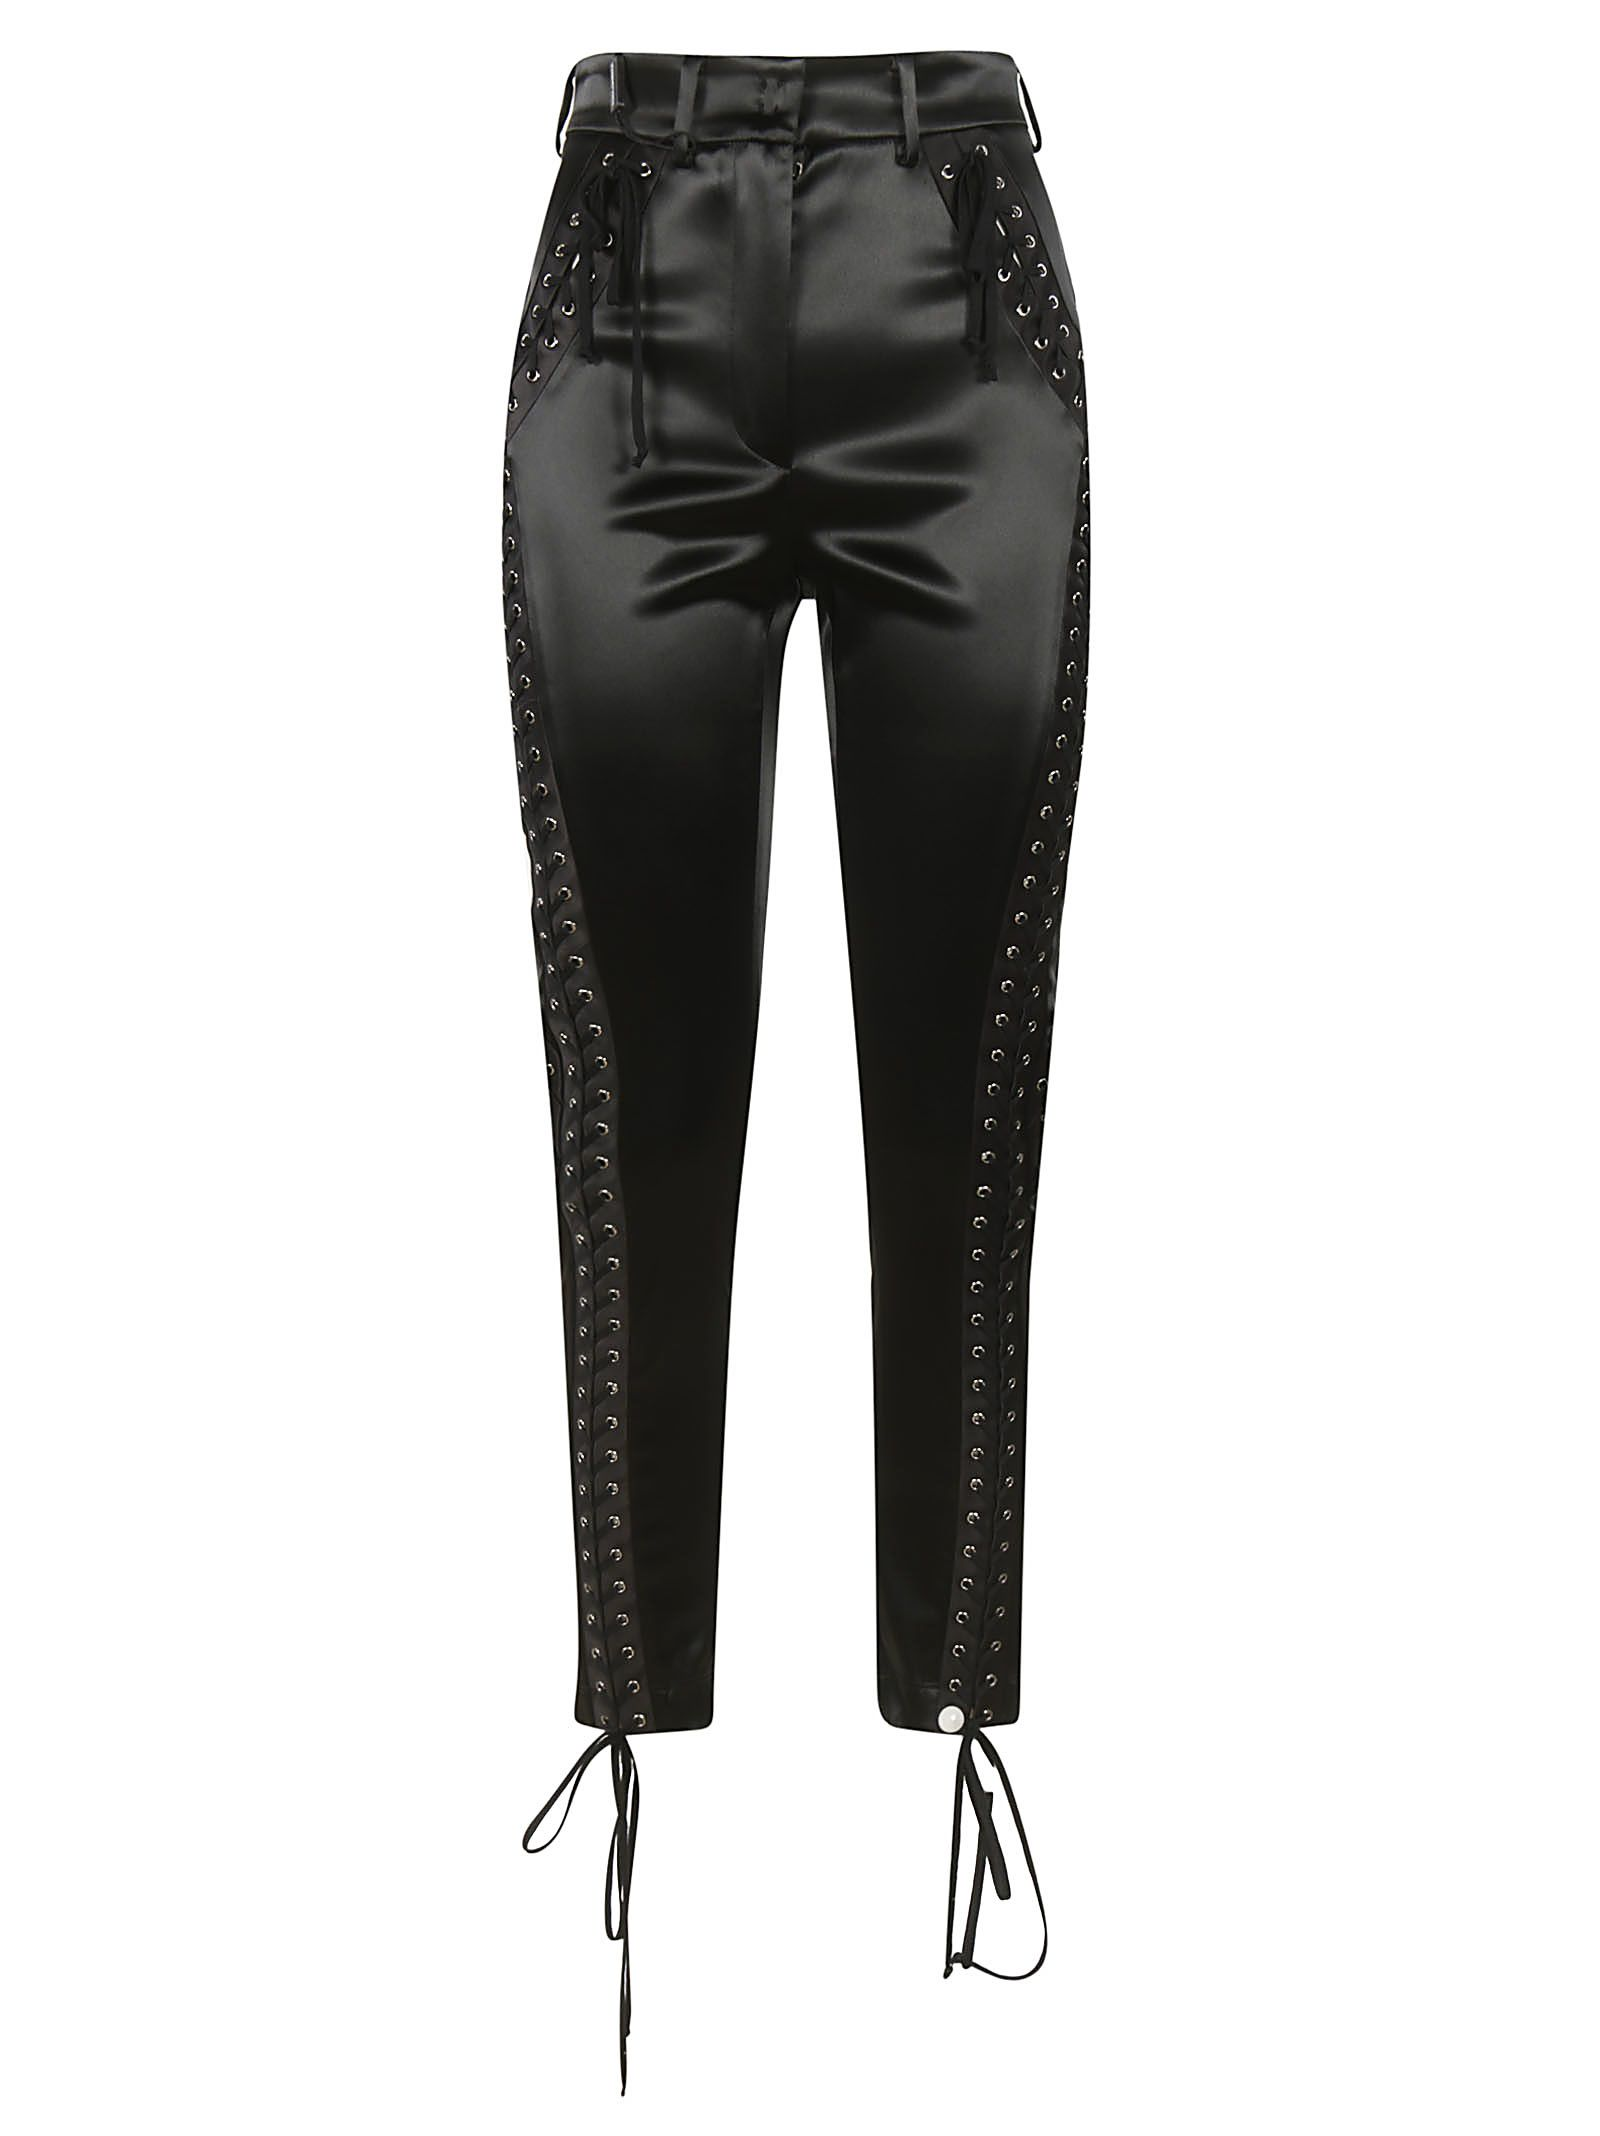 LACE-UP DETAIL TROUSERS from Italist.com